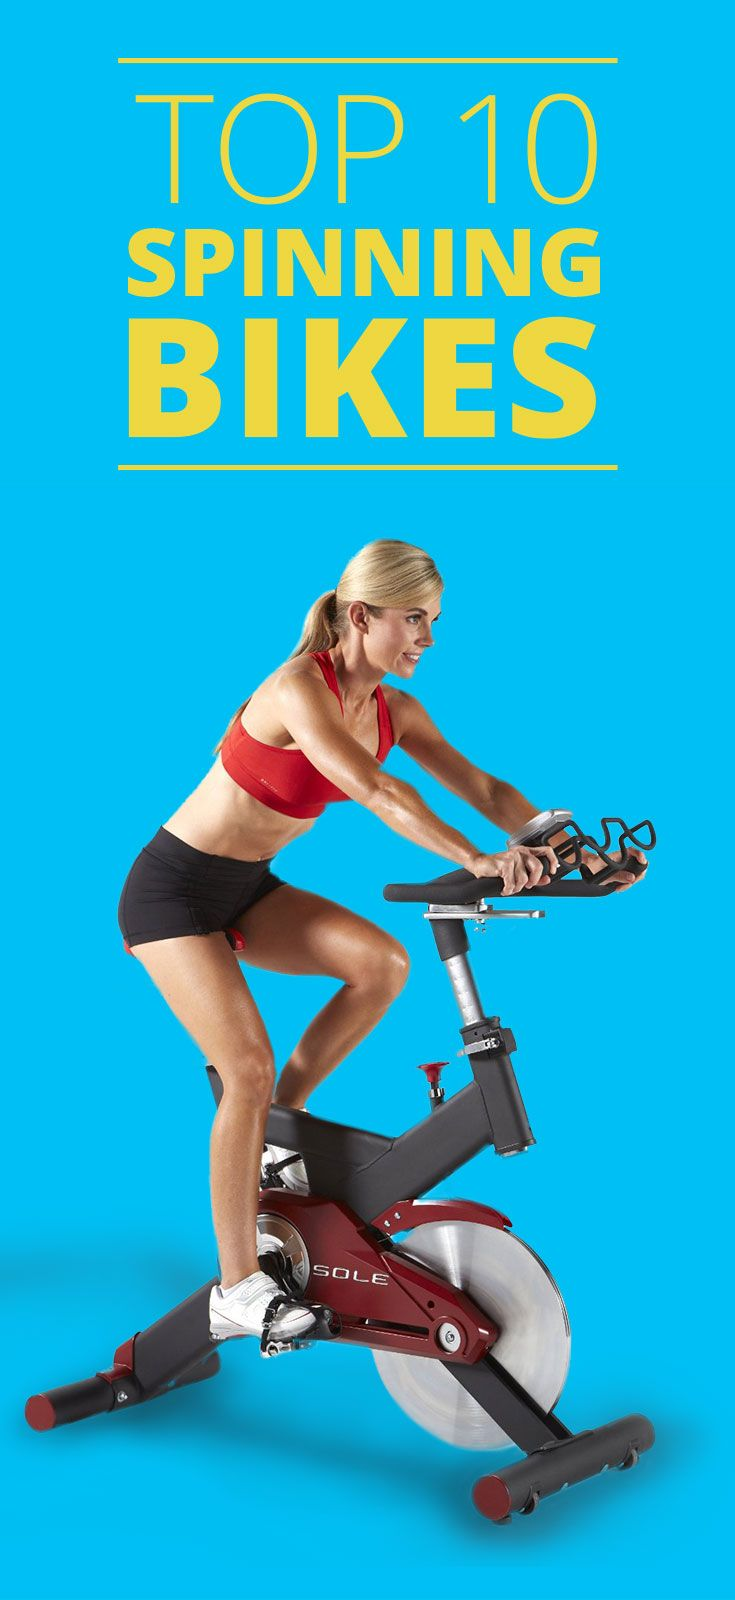 Exercise bikes have become the go-to for home fitness. These best rated spin bikes get the job done:  http://www.comparaboo.com/spinning-bikes?origin=googled2